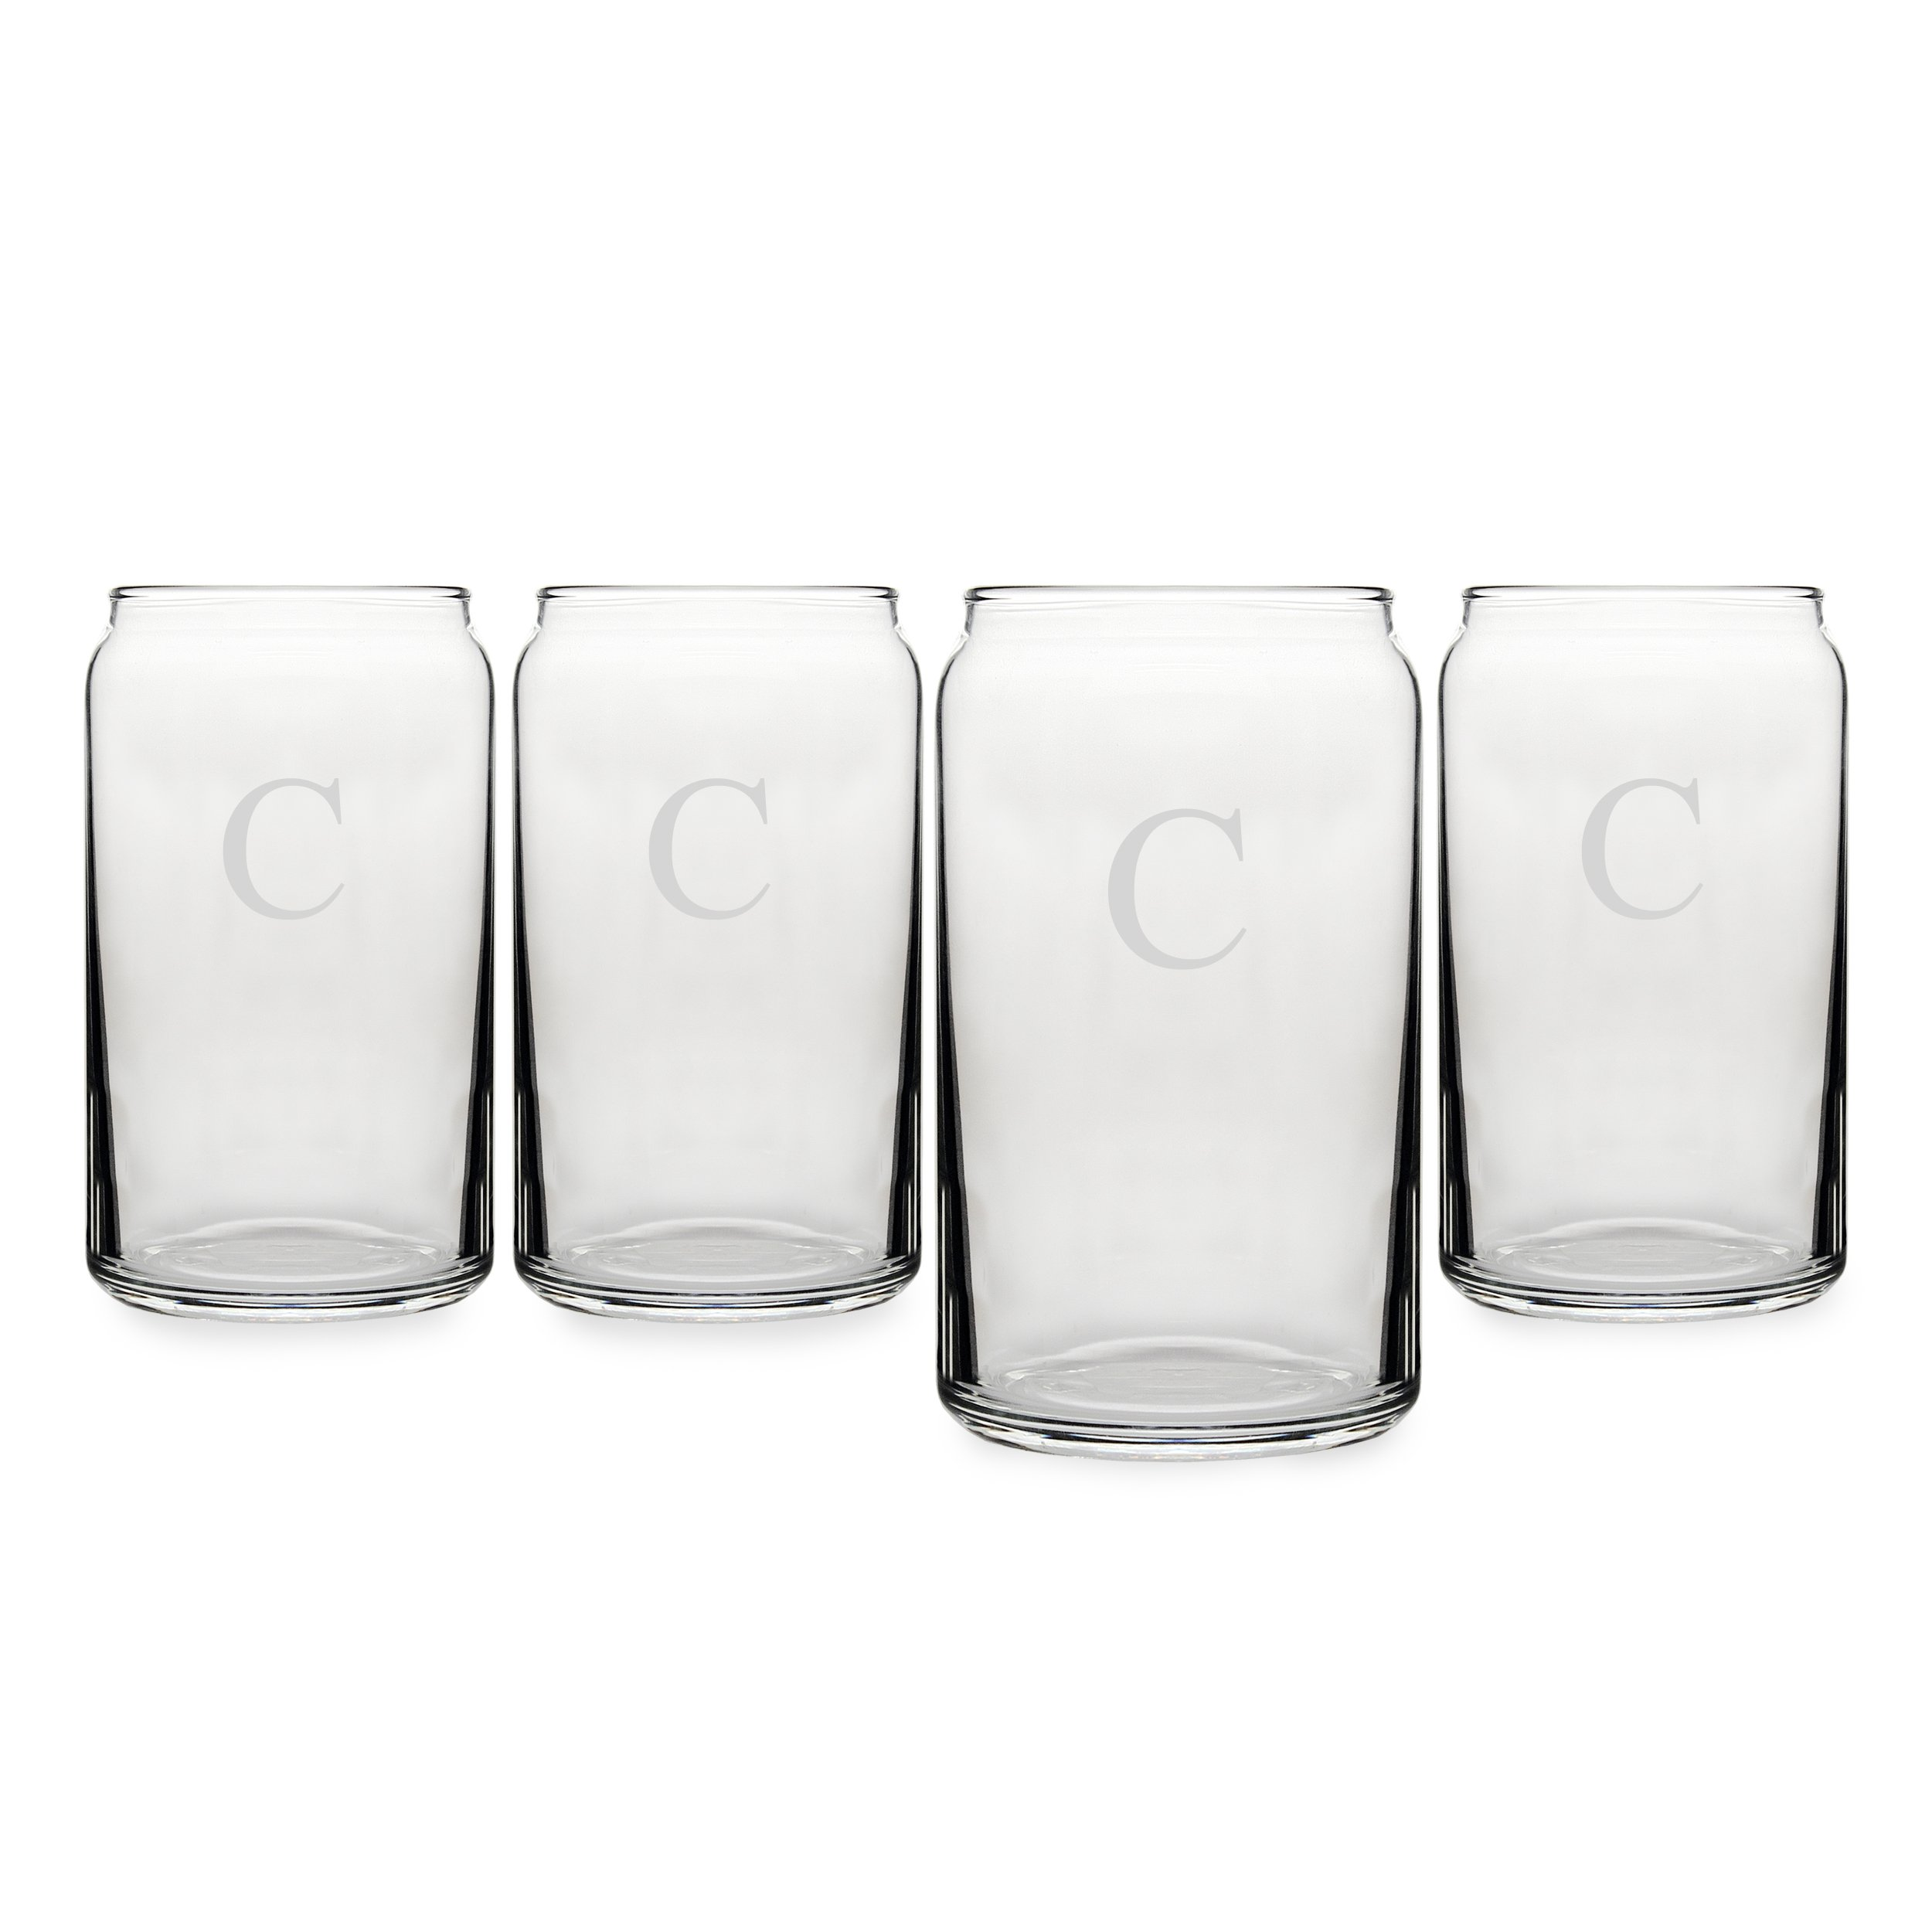 Cathy's Concepts Personalized Craft Beer Can Glasses, Set of 4, Letter C